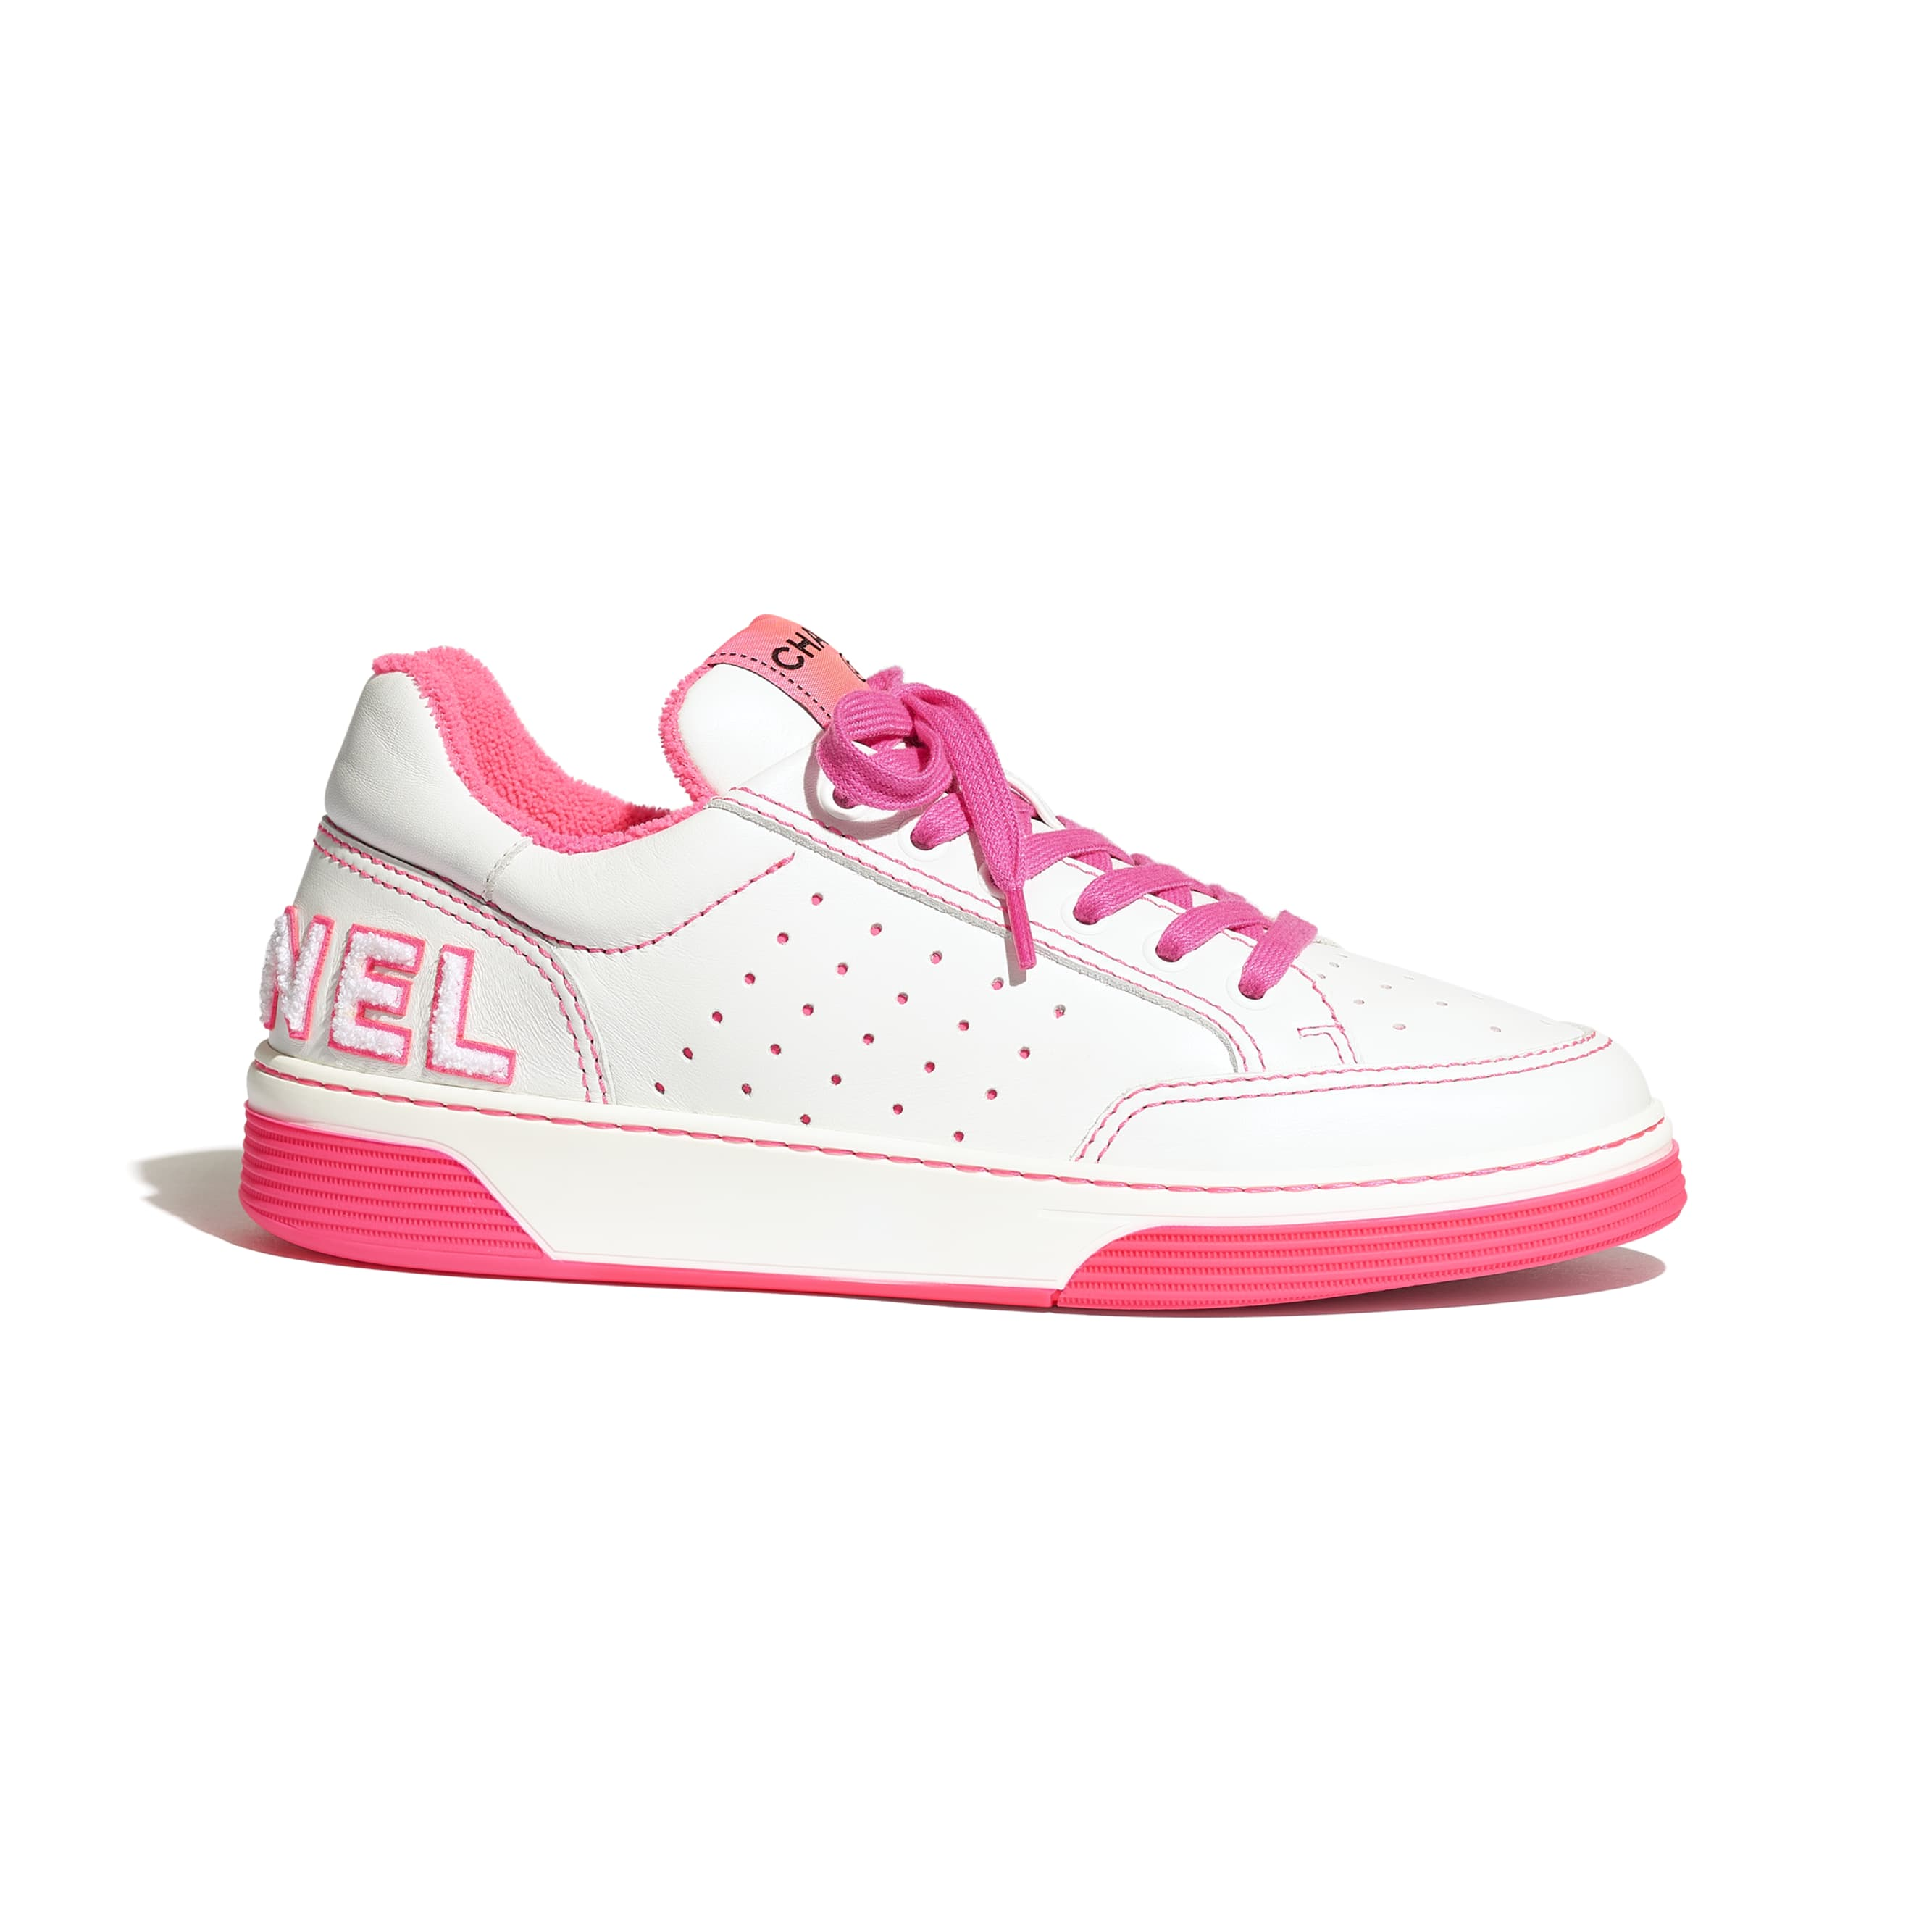 Trainers - White & Fuchsia - Calfskin - CHANEL - Default view - see standard sized version